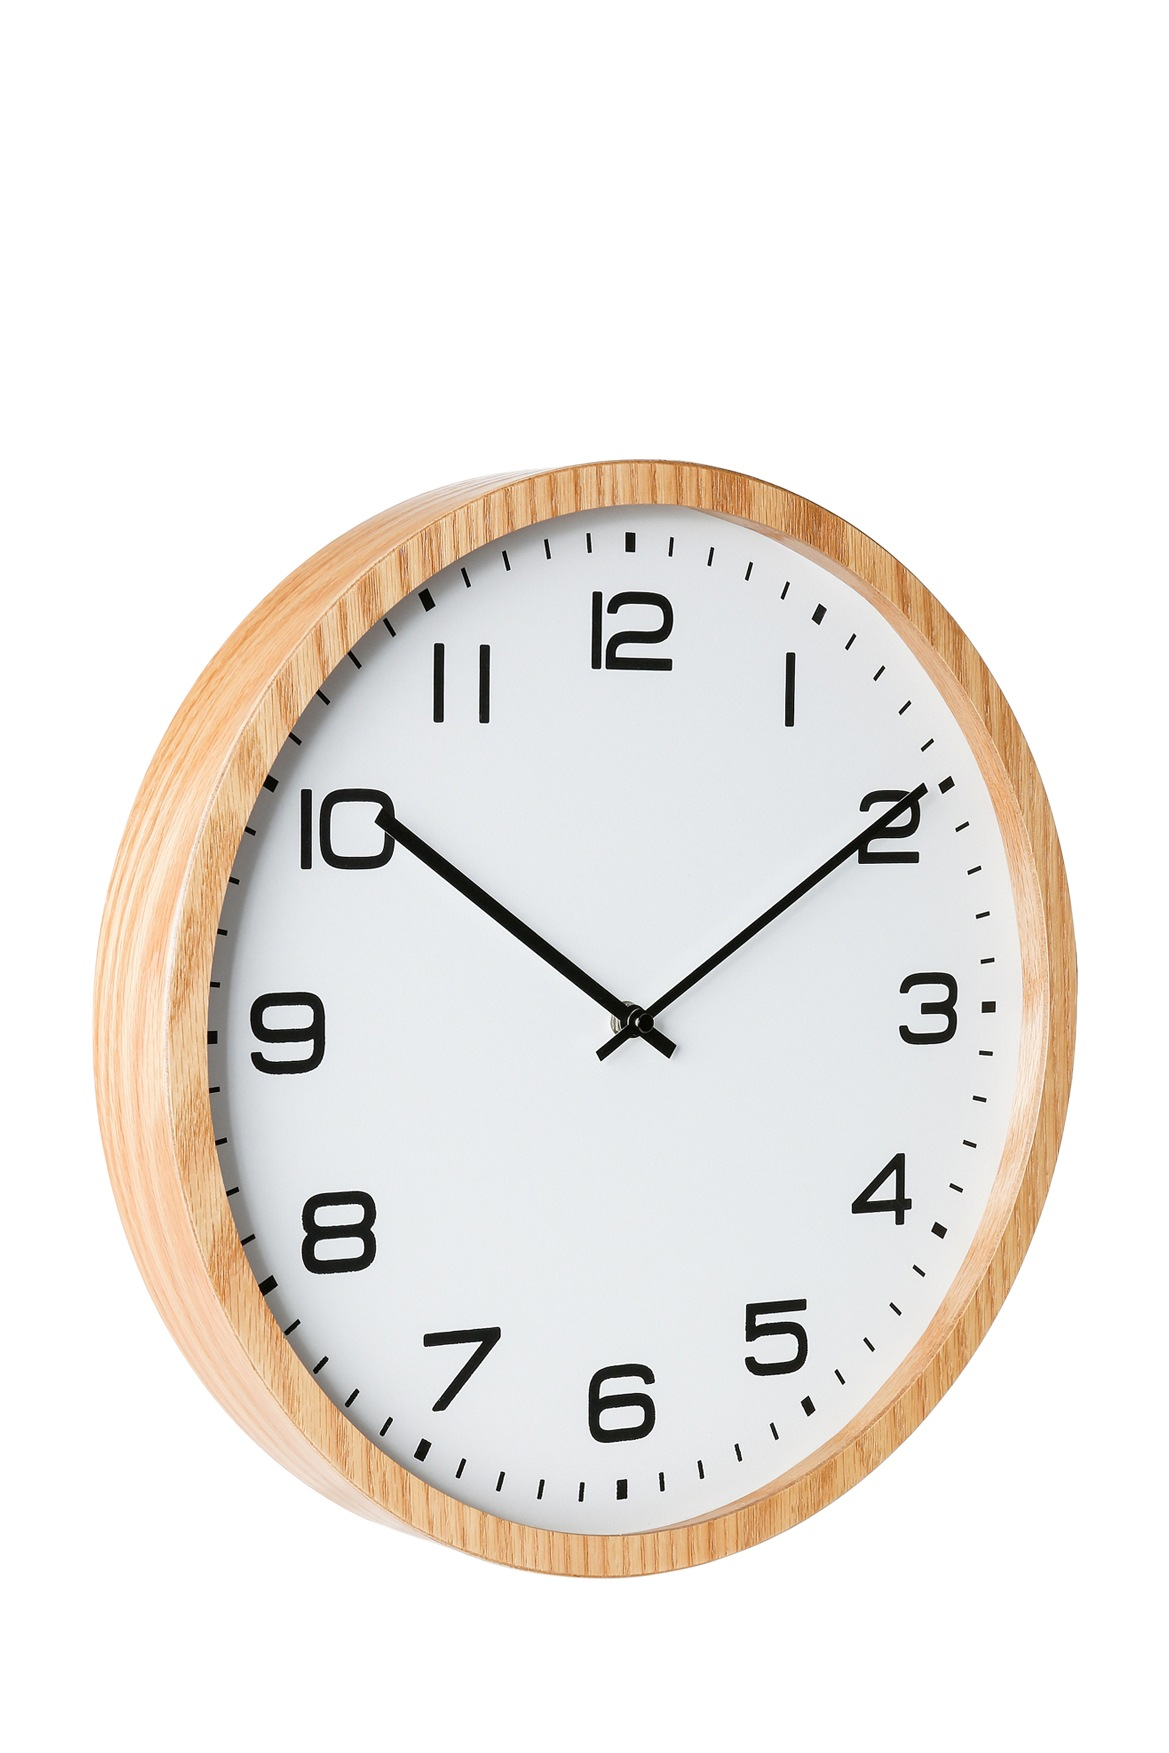 Australian house garden kingston wall clock 40cm myer online myer online categoryname amipublicfo Image collections